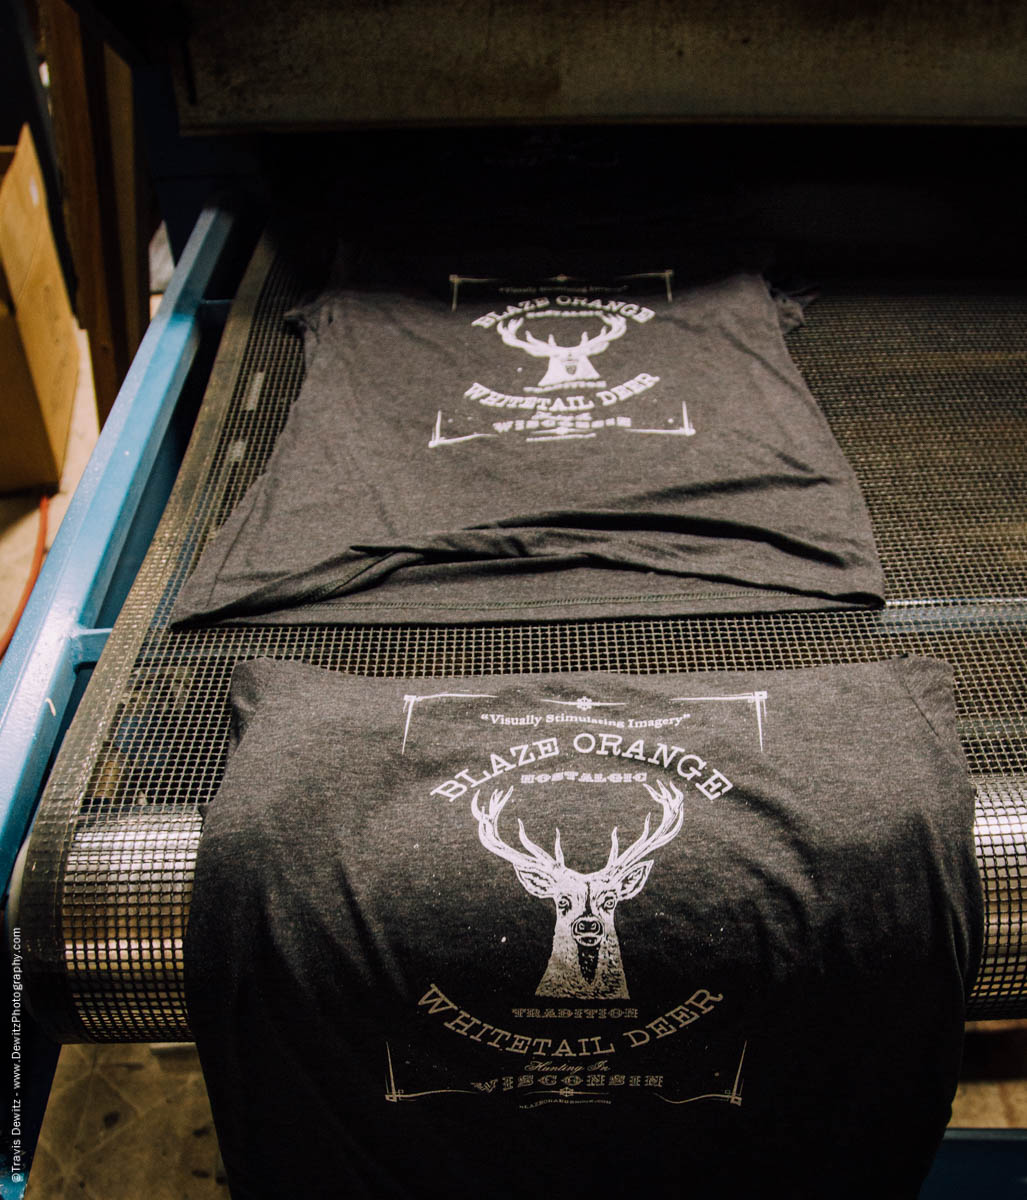 Blaze Orange Deer Huning Ambient Inks Shirt Production-3917